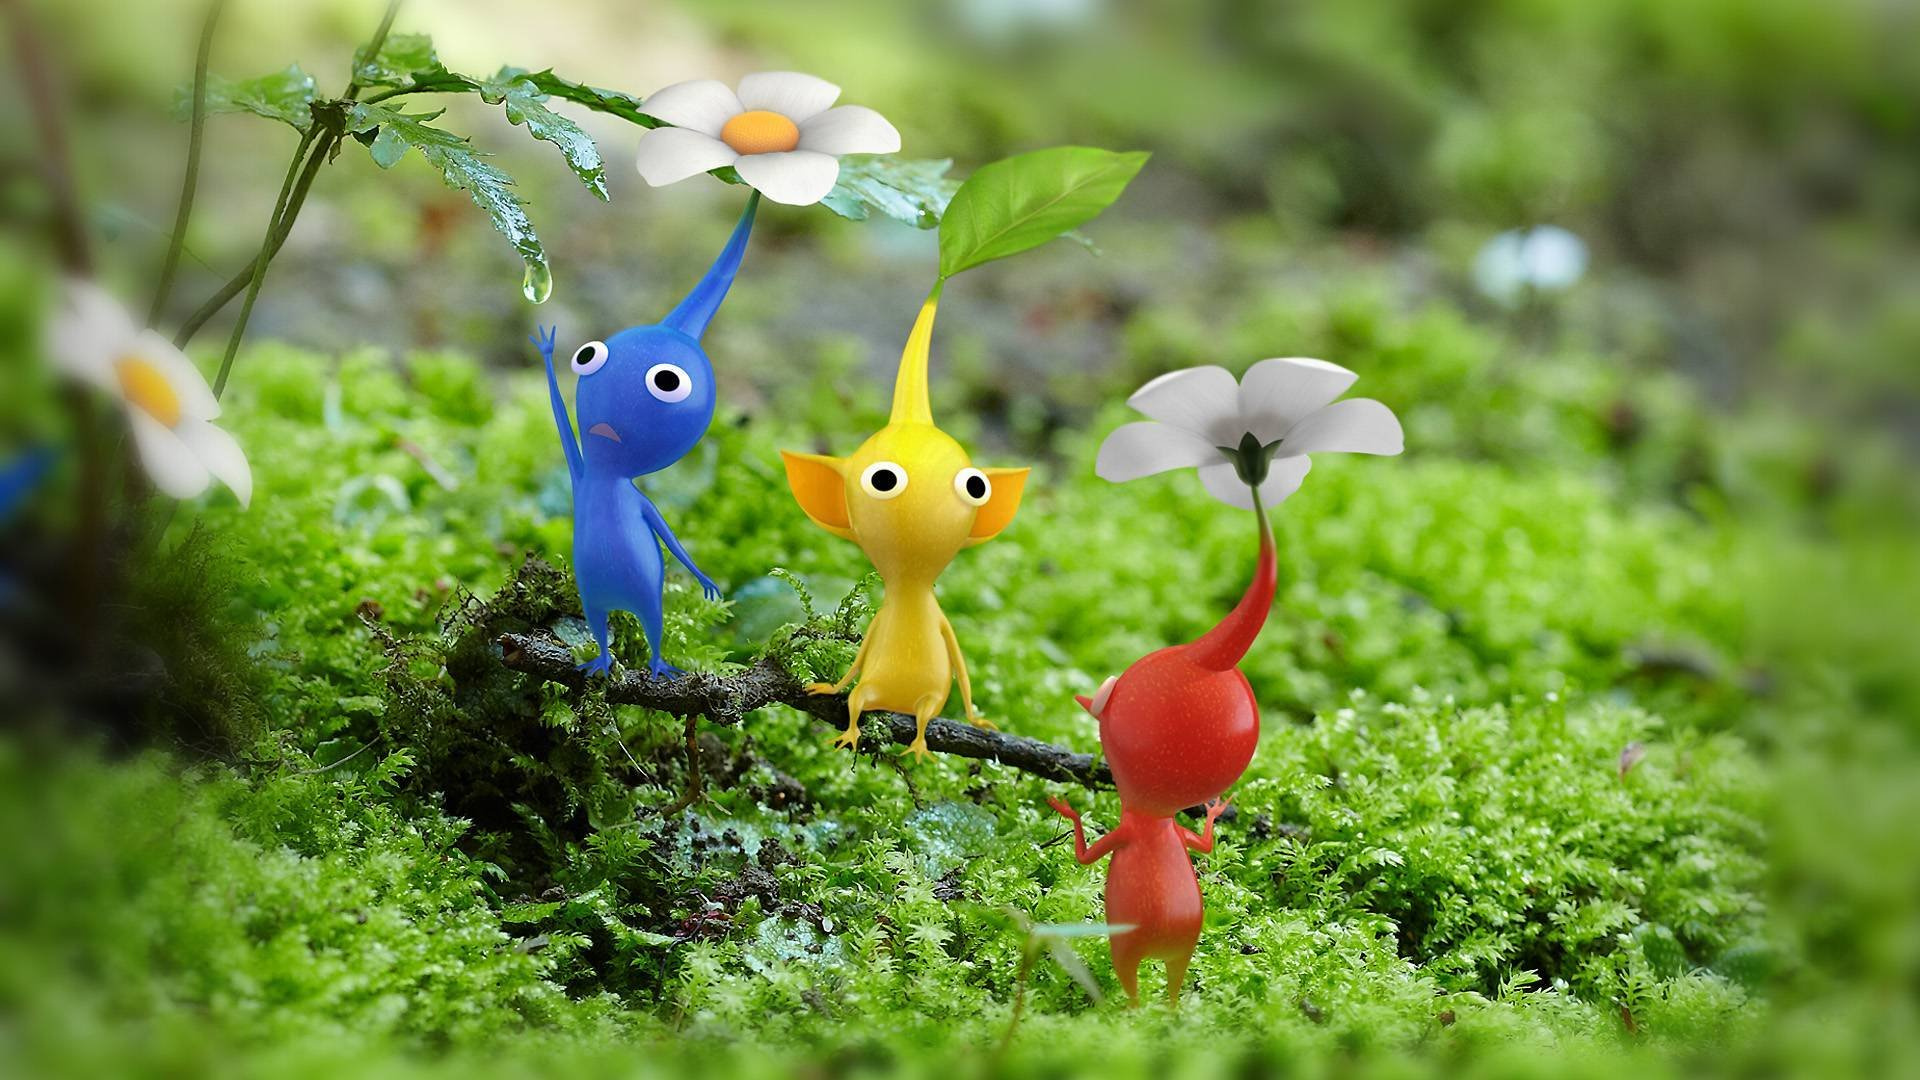 Rumours About Pikmin 3 Coming To Nintendo Switch Intensify Nintendo Life